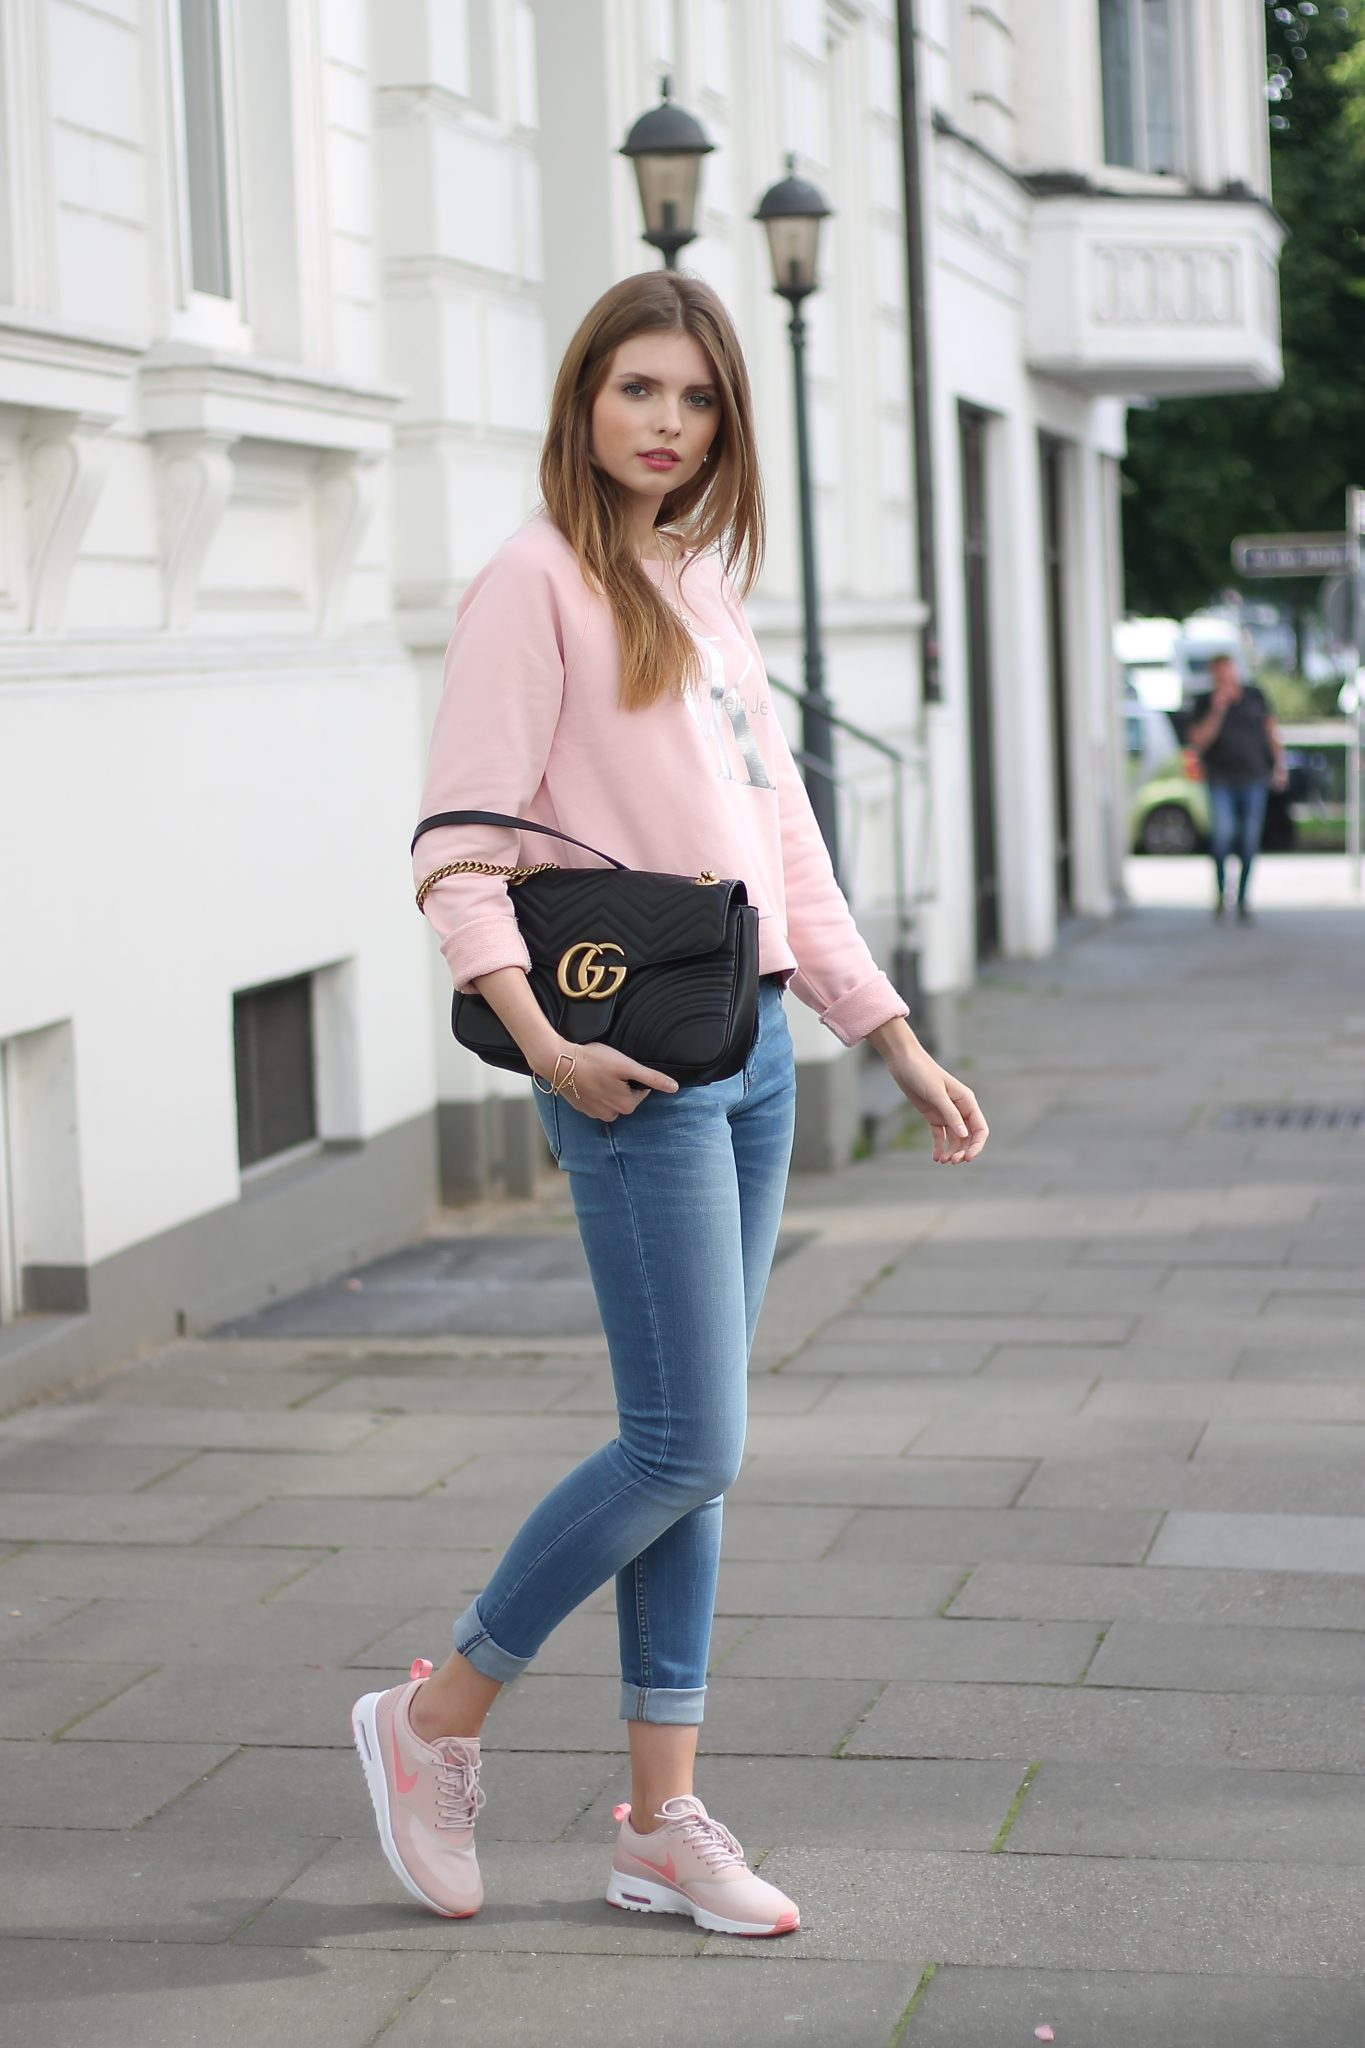 IMG 7737 - CASUAL STREET STYLE I CALVIN KLEIN x GUCCI MARMONT BAG